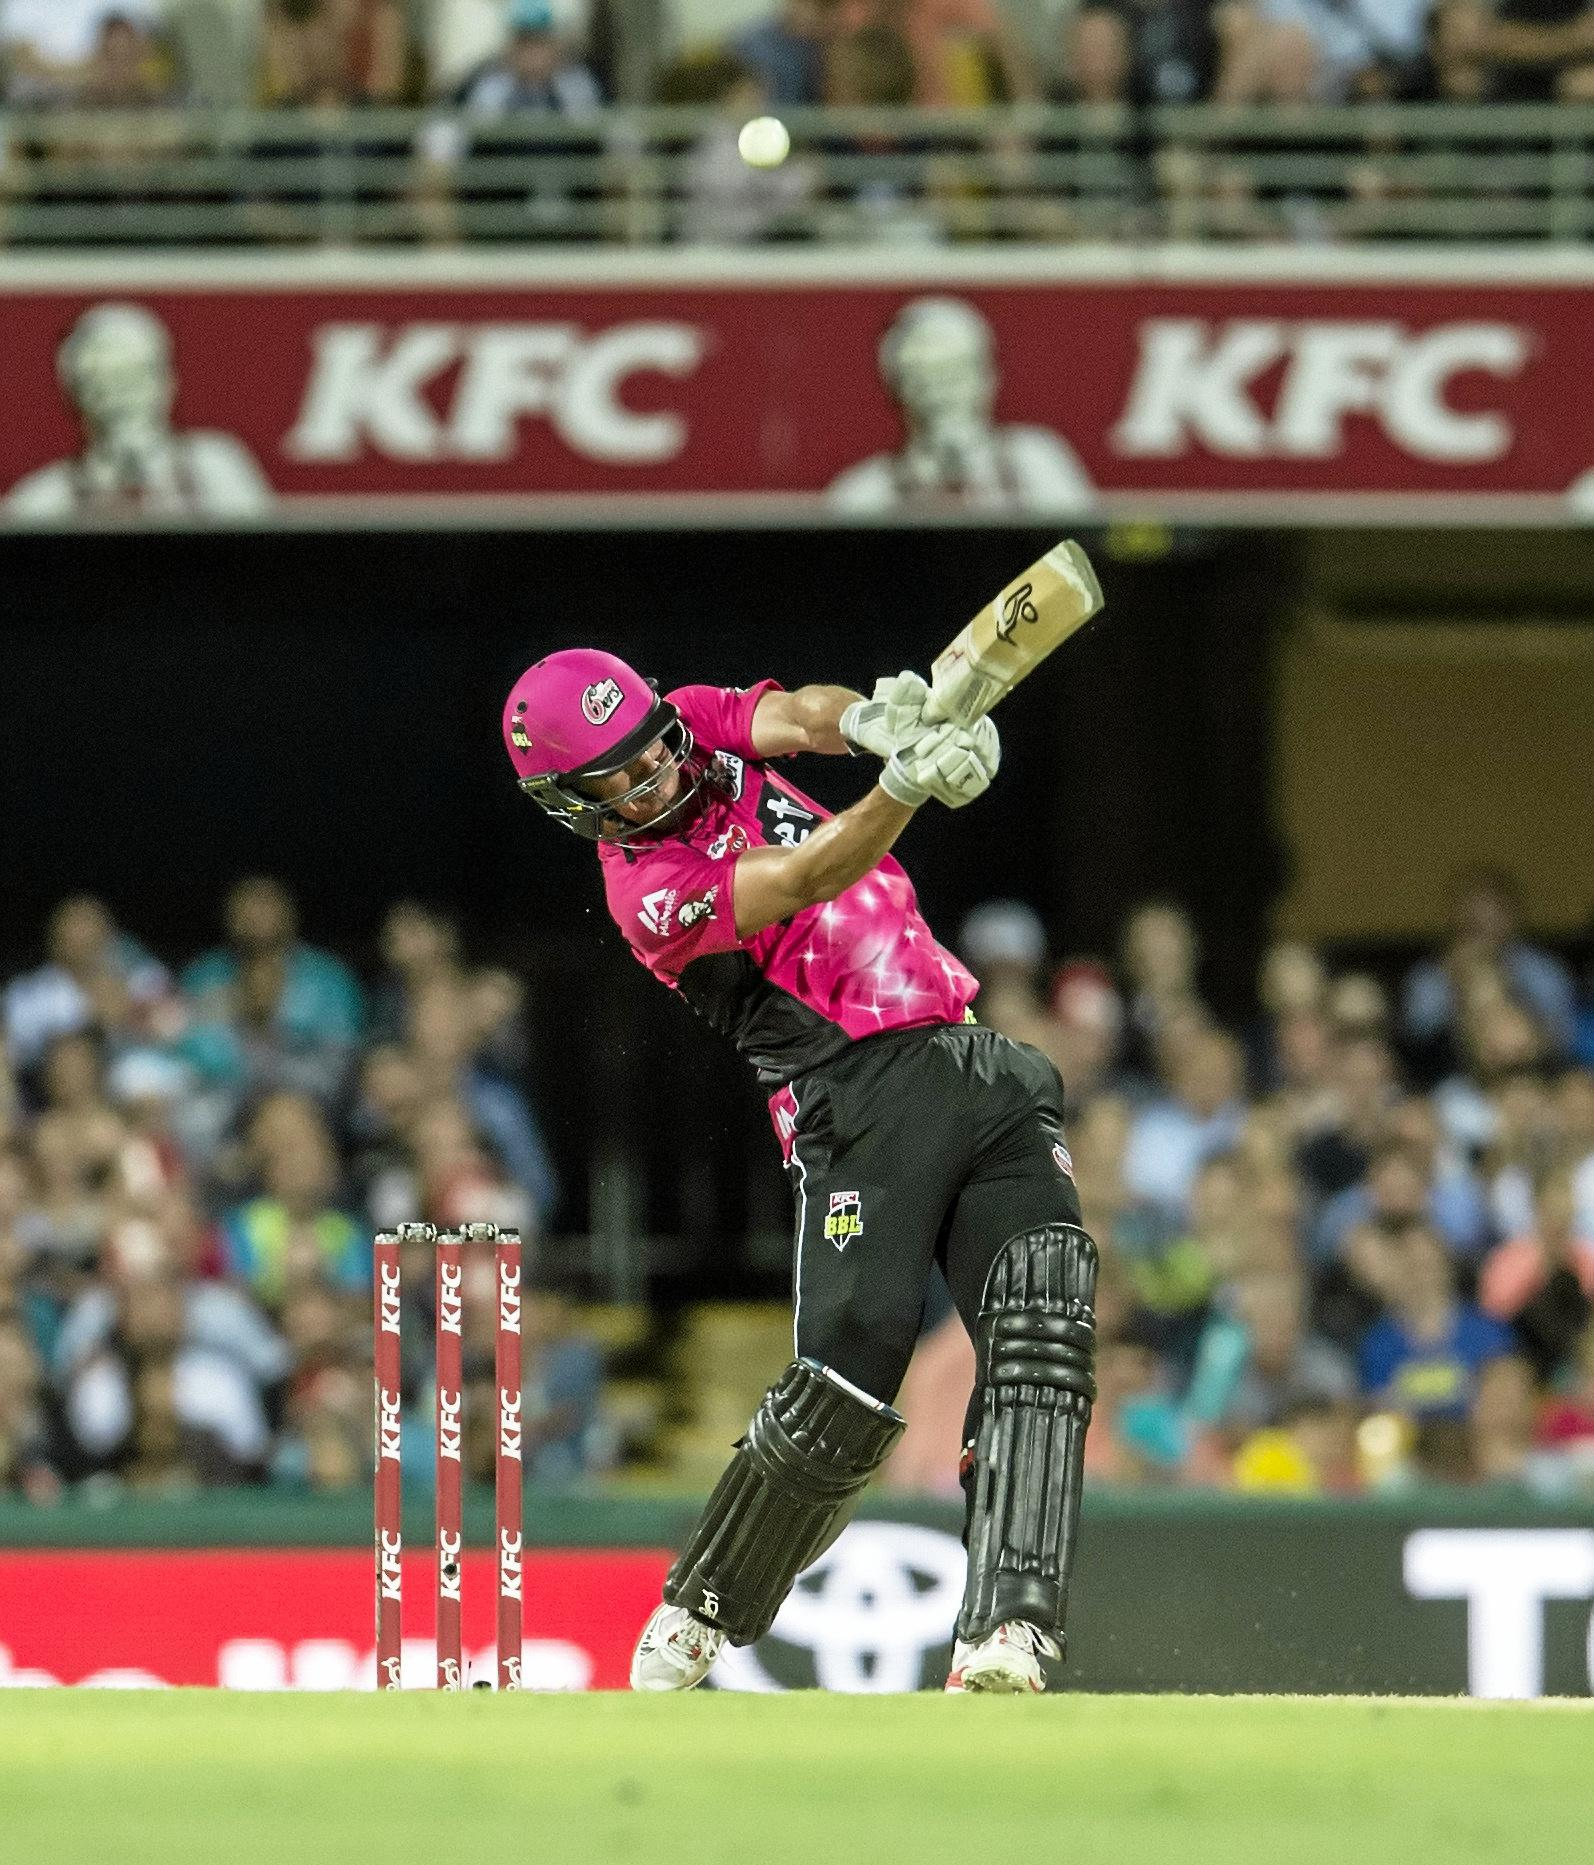 Daniel Hughes of the Sydney Sixers during the Big Bash League match against the Brisbane Heat.